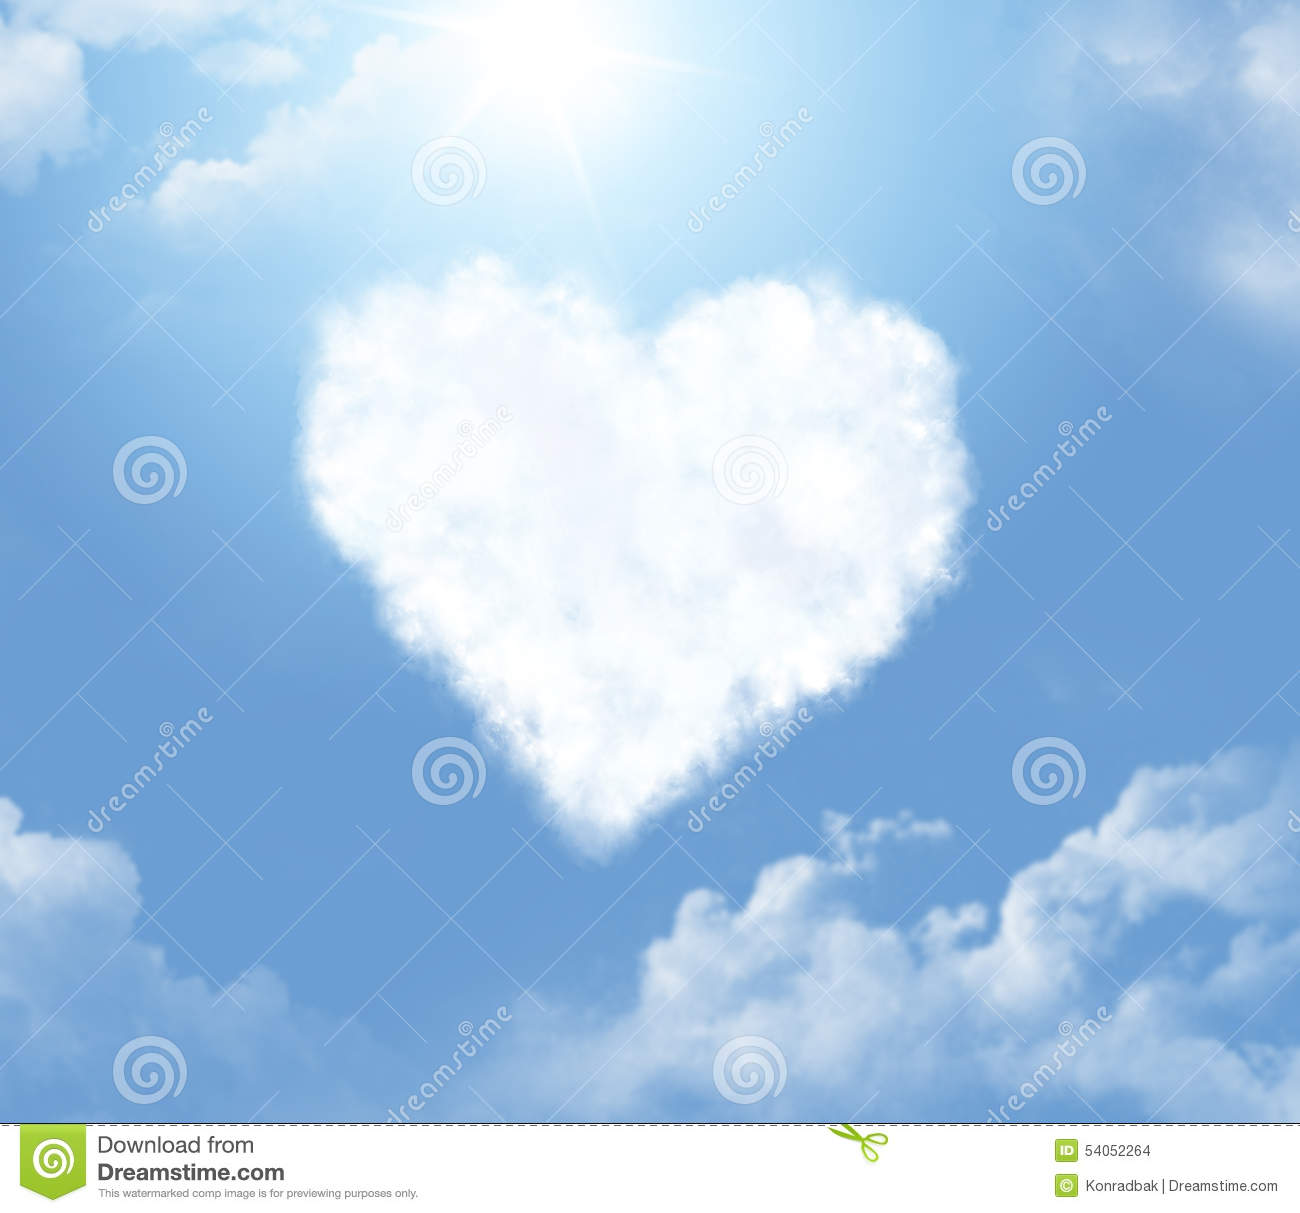 Cloud In A Form Of A Heart Stock Photo - Image: 54052264